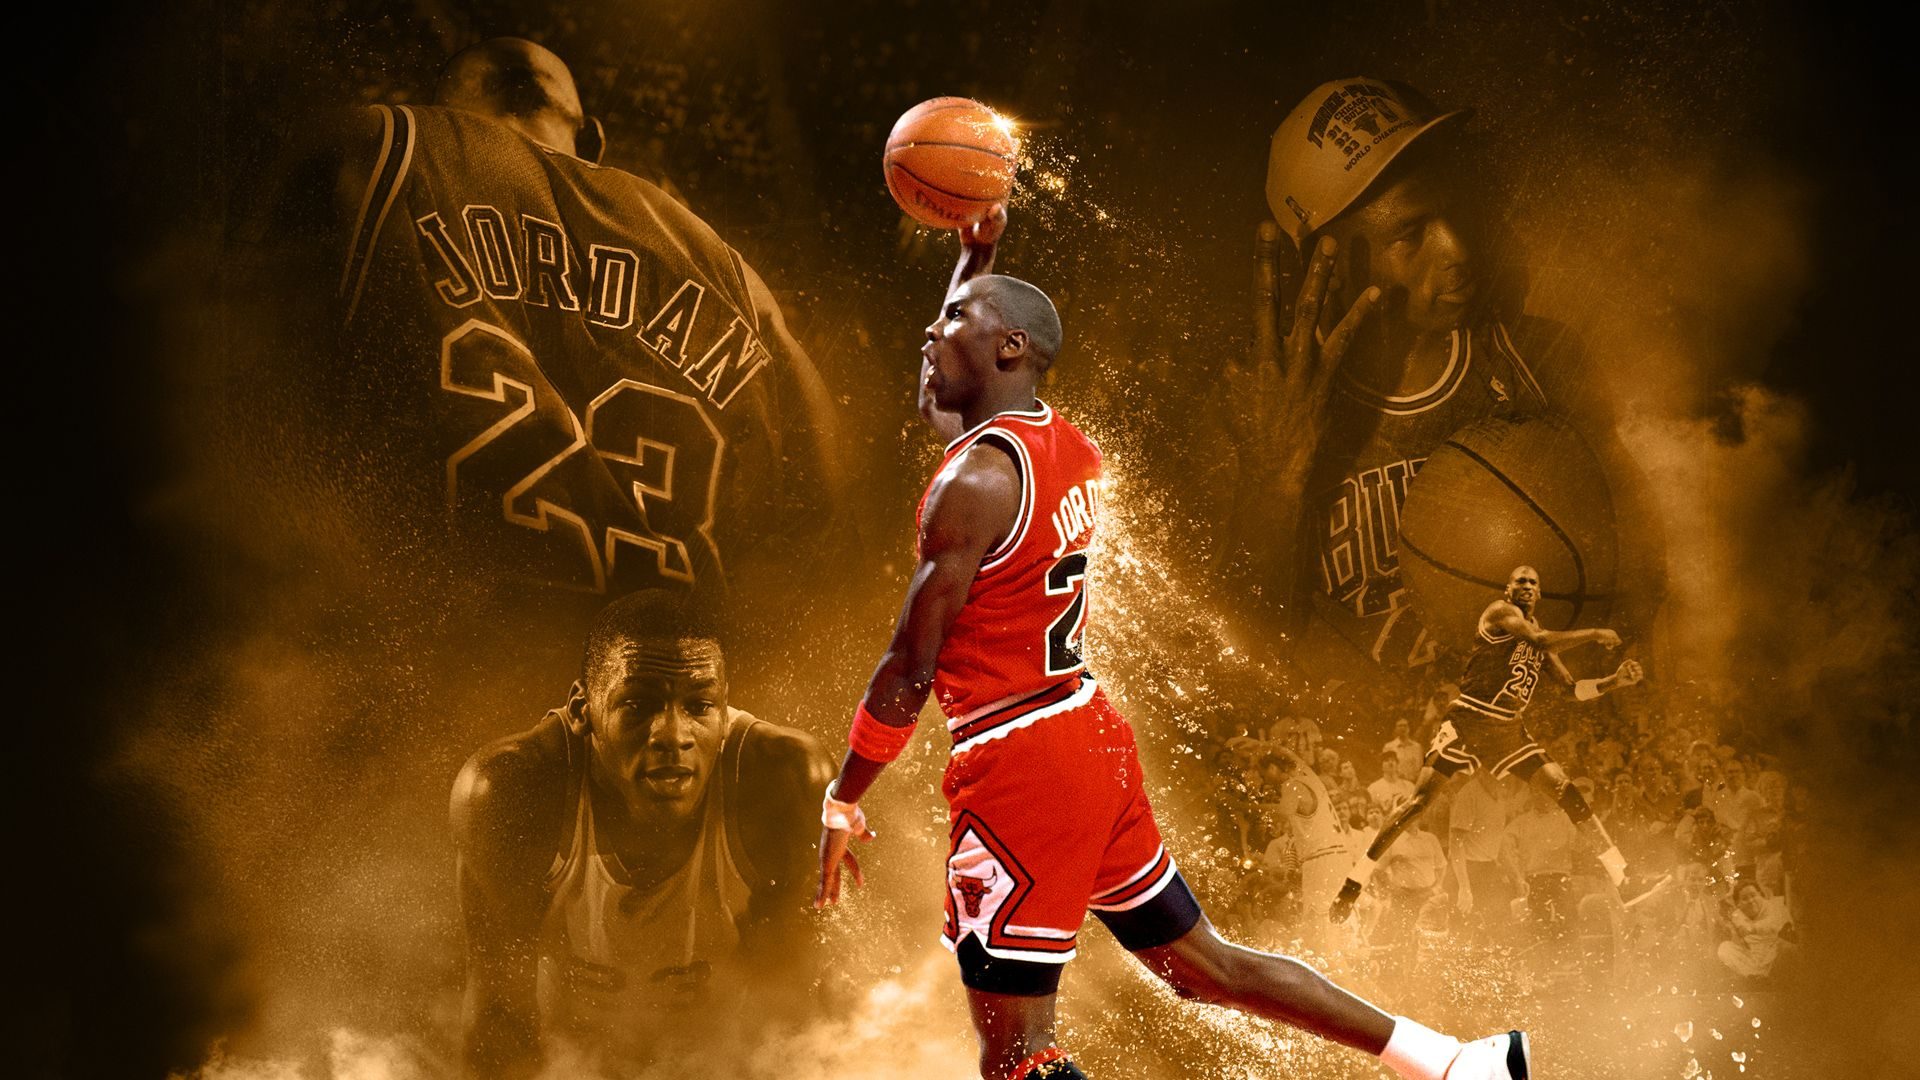 Michael Jordan Wallpaper 10 1920 X 1080 Stmed Net Michael Jordan Micheal Jordan Nba